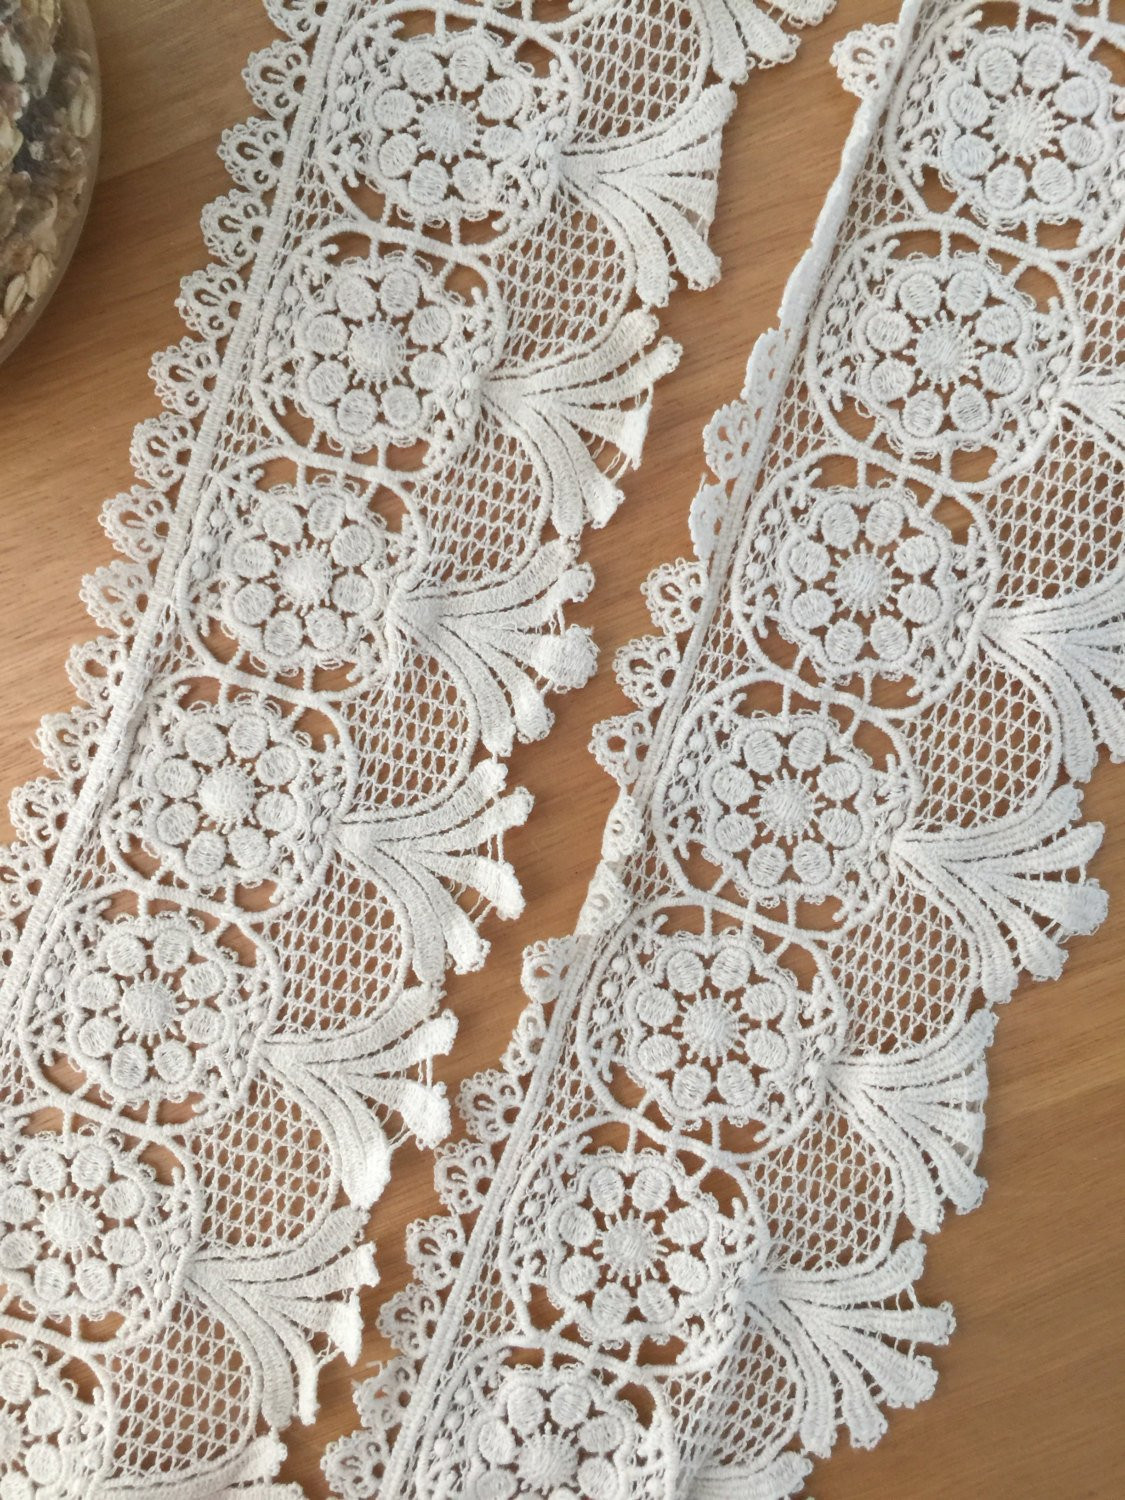 Crochet Lace Trimming New Vintage Style Cotton Lace Trim In Beige Crochet Lace Trim Of Superb 50 Pics Crochet Lace Trimming